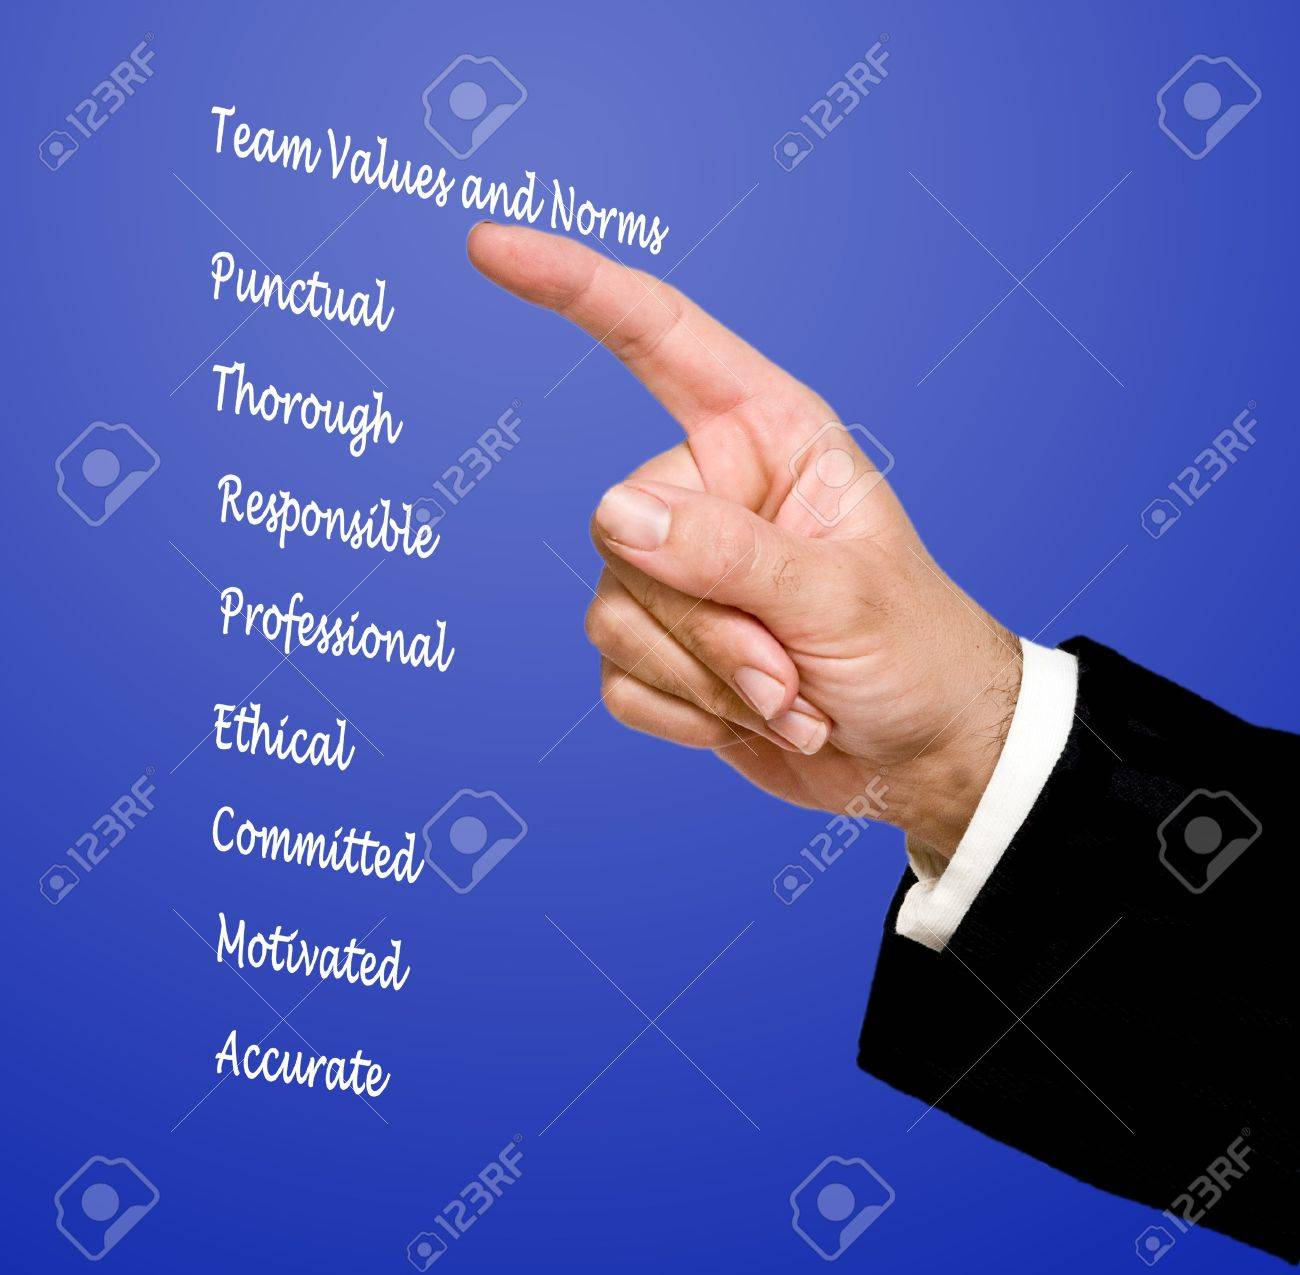 team values and norms Stock Photo - 14527728